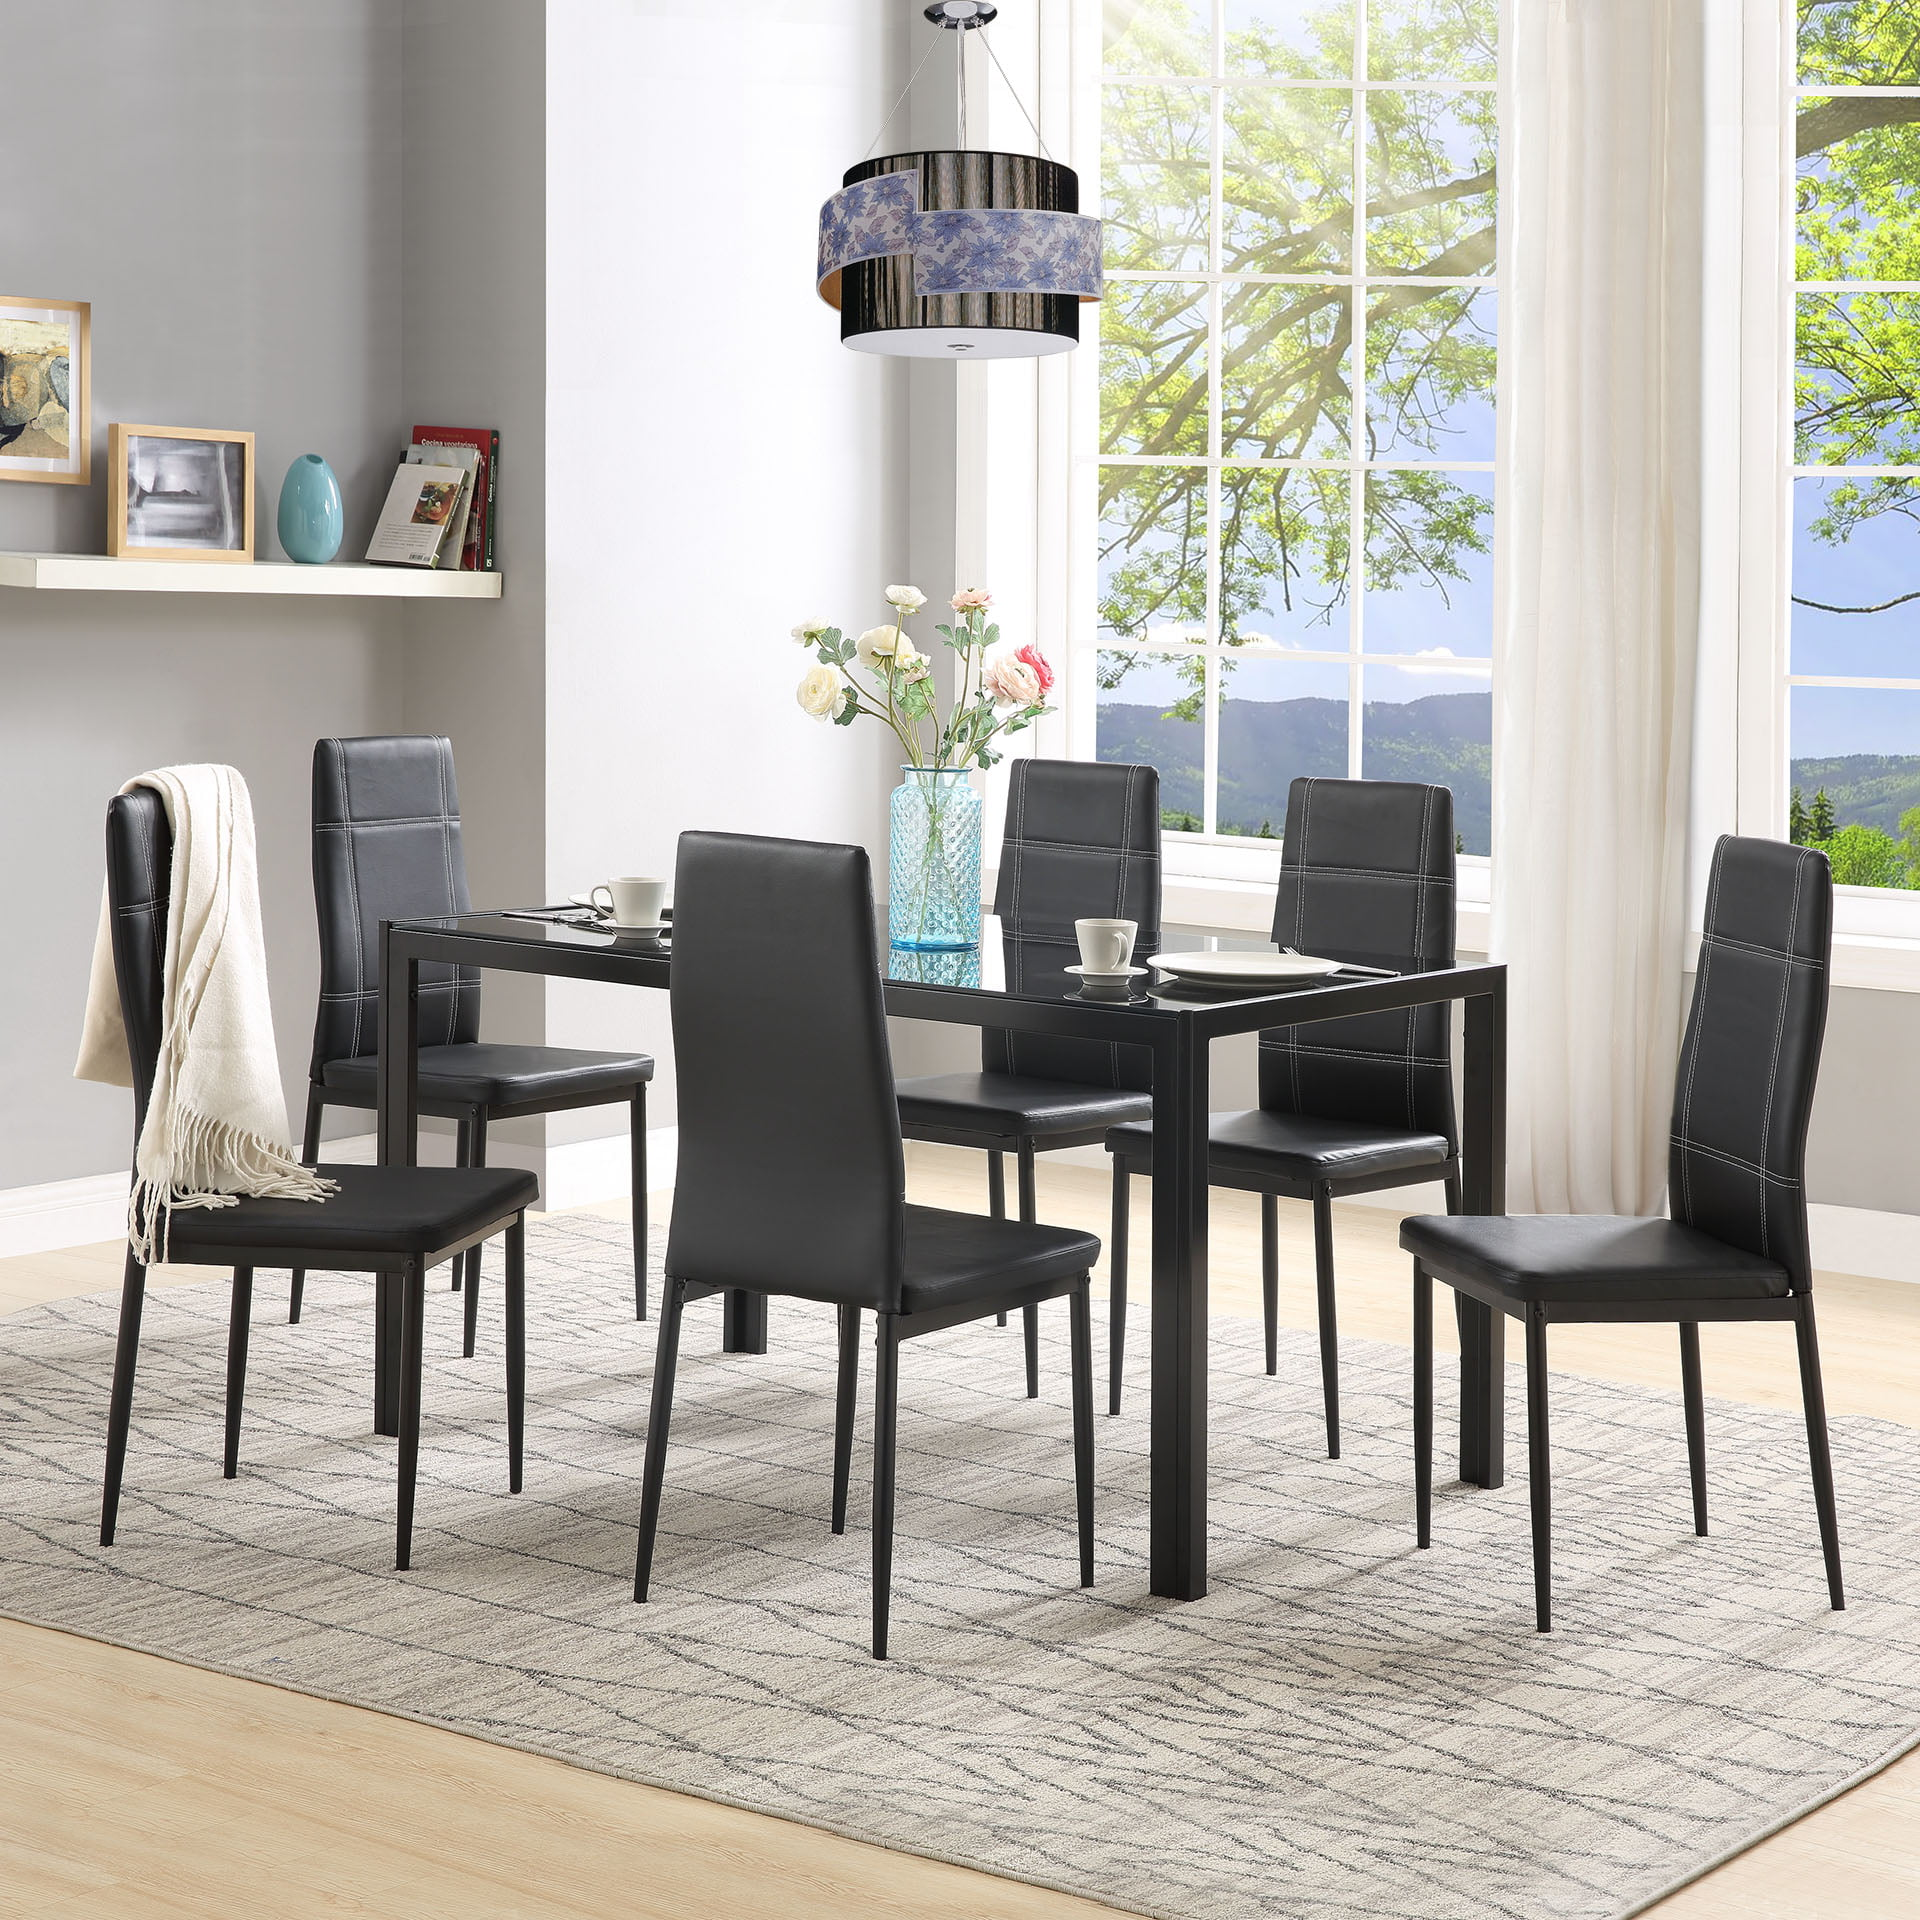 Black Metal Dining Chairs Set Of 6 Off 71, Black Dining Table Chairs Set Of 6